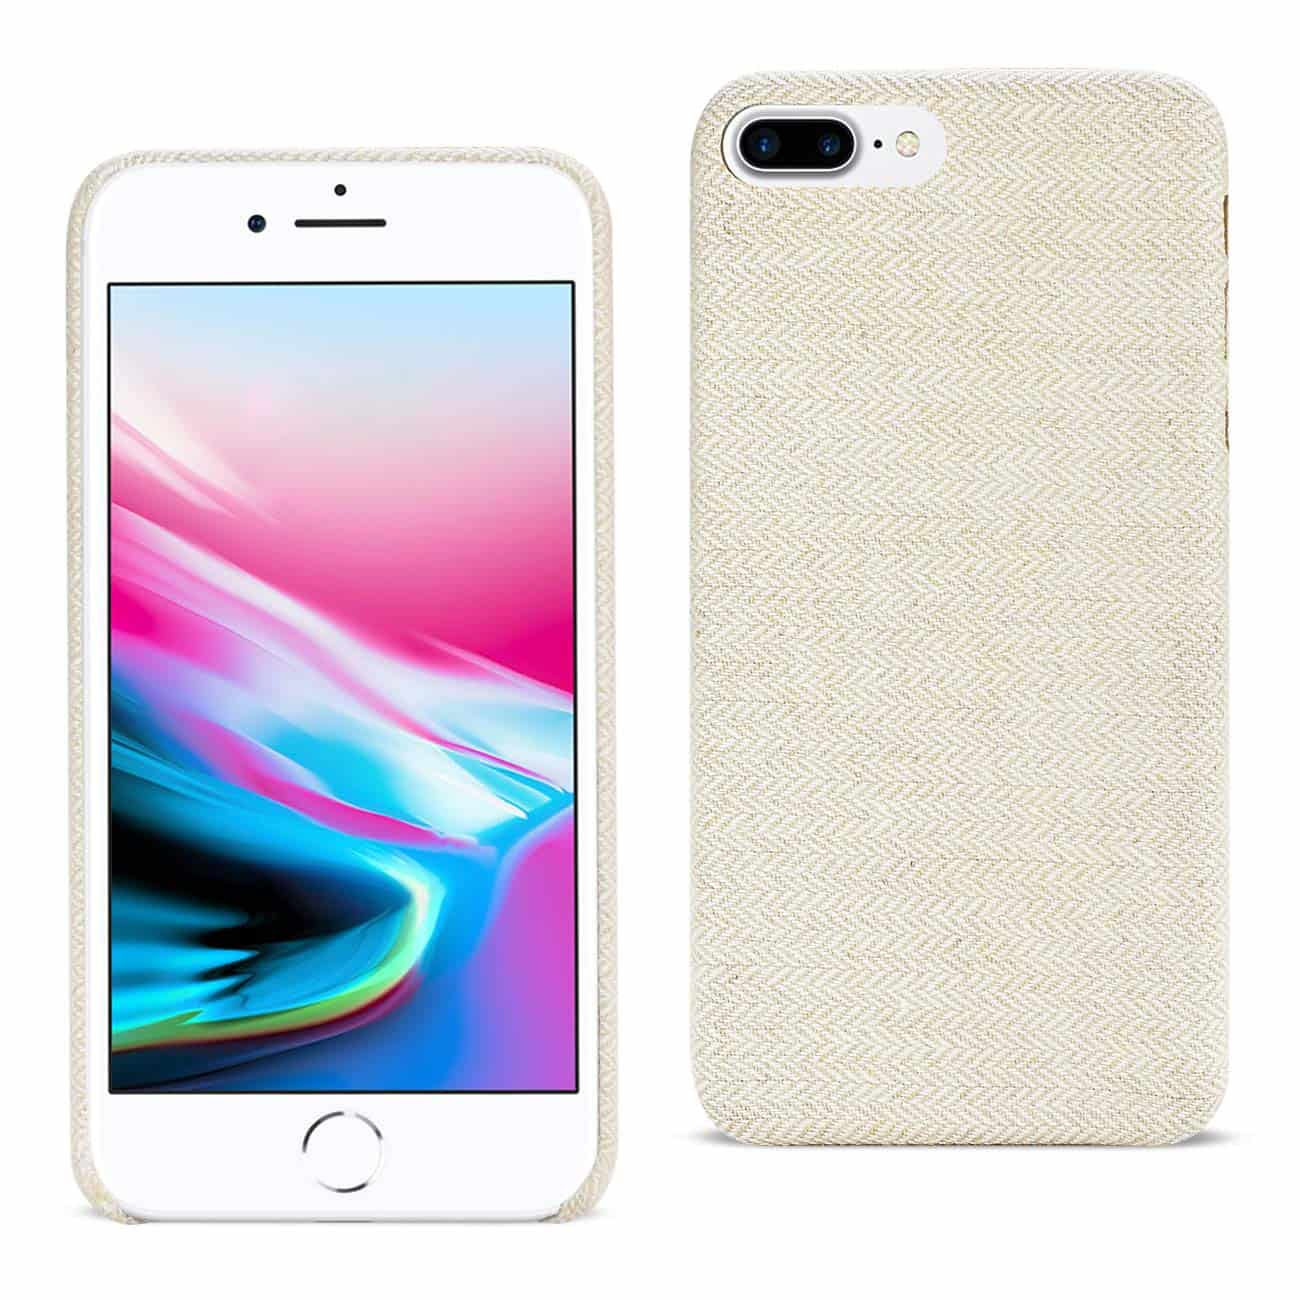 IPHONE 8 PLUS HERRINGBONE FABRIC IN BEIGE